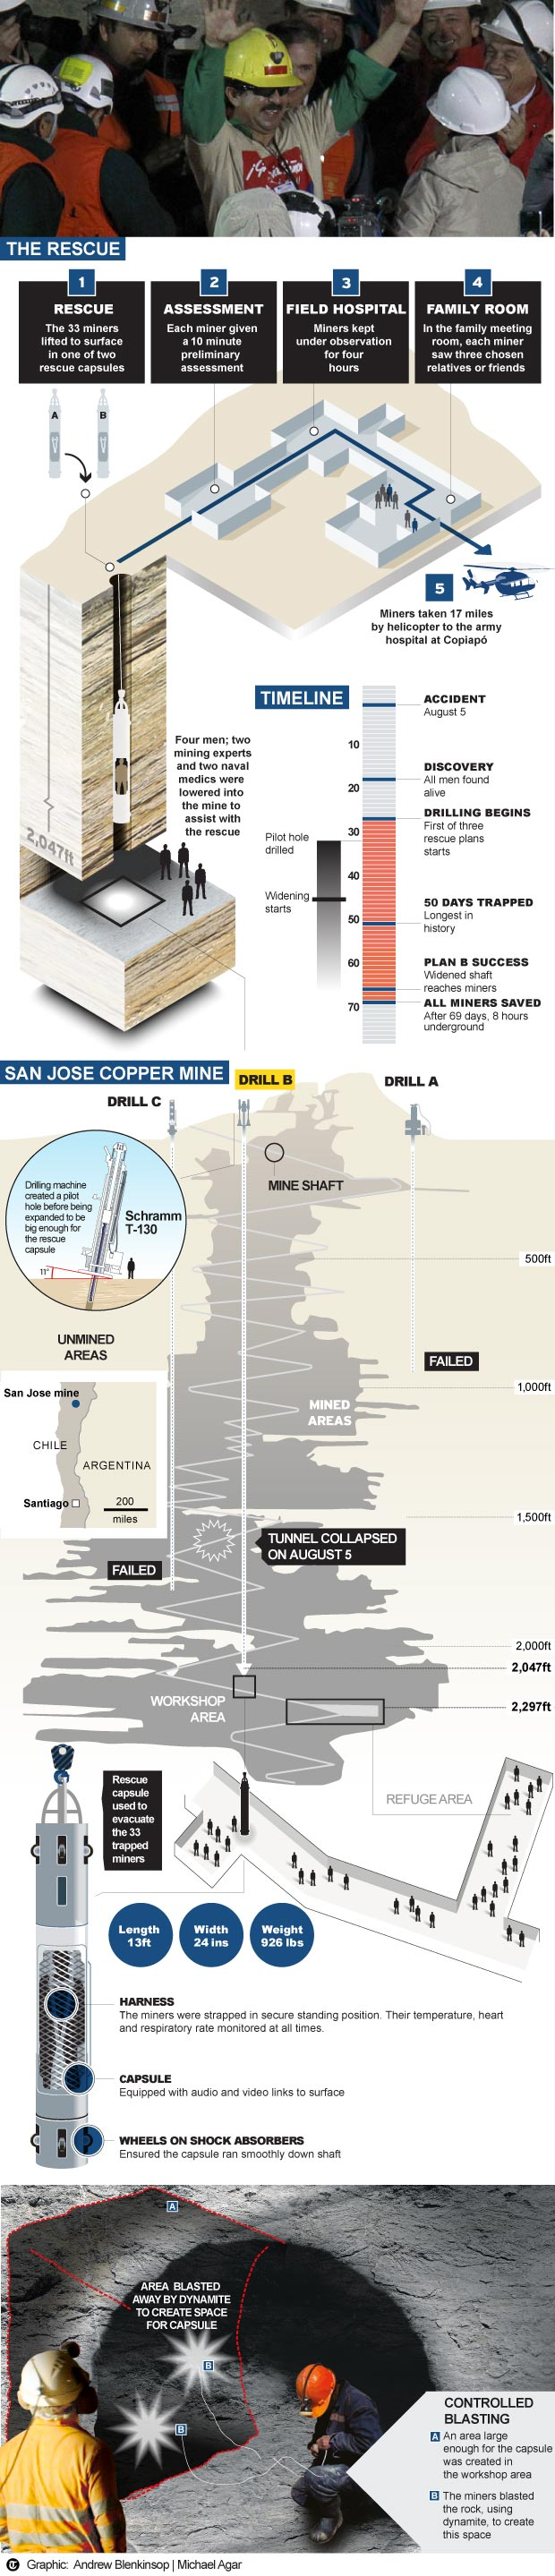 Chilean Miners Rescue Infographic Infographic